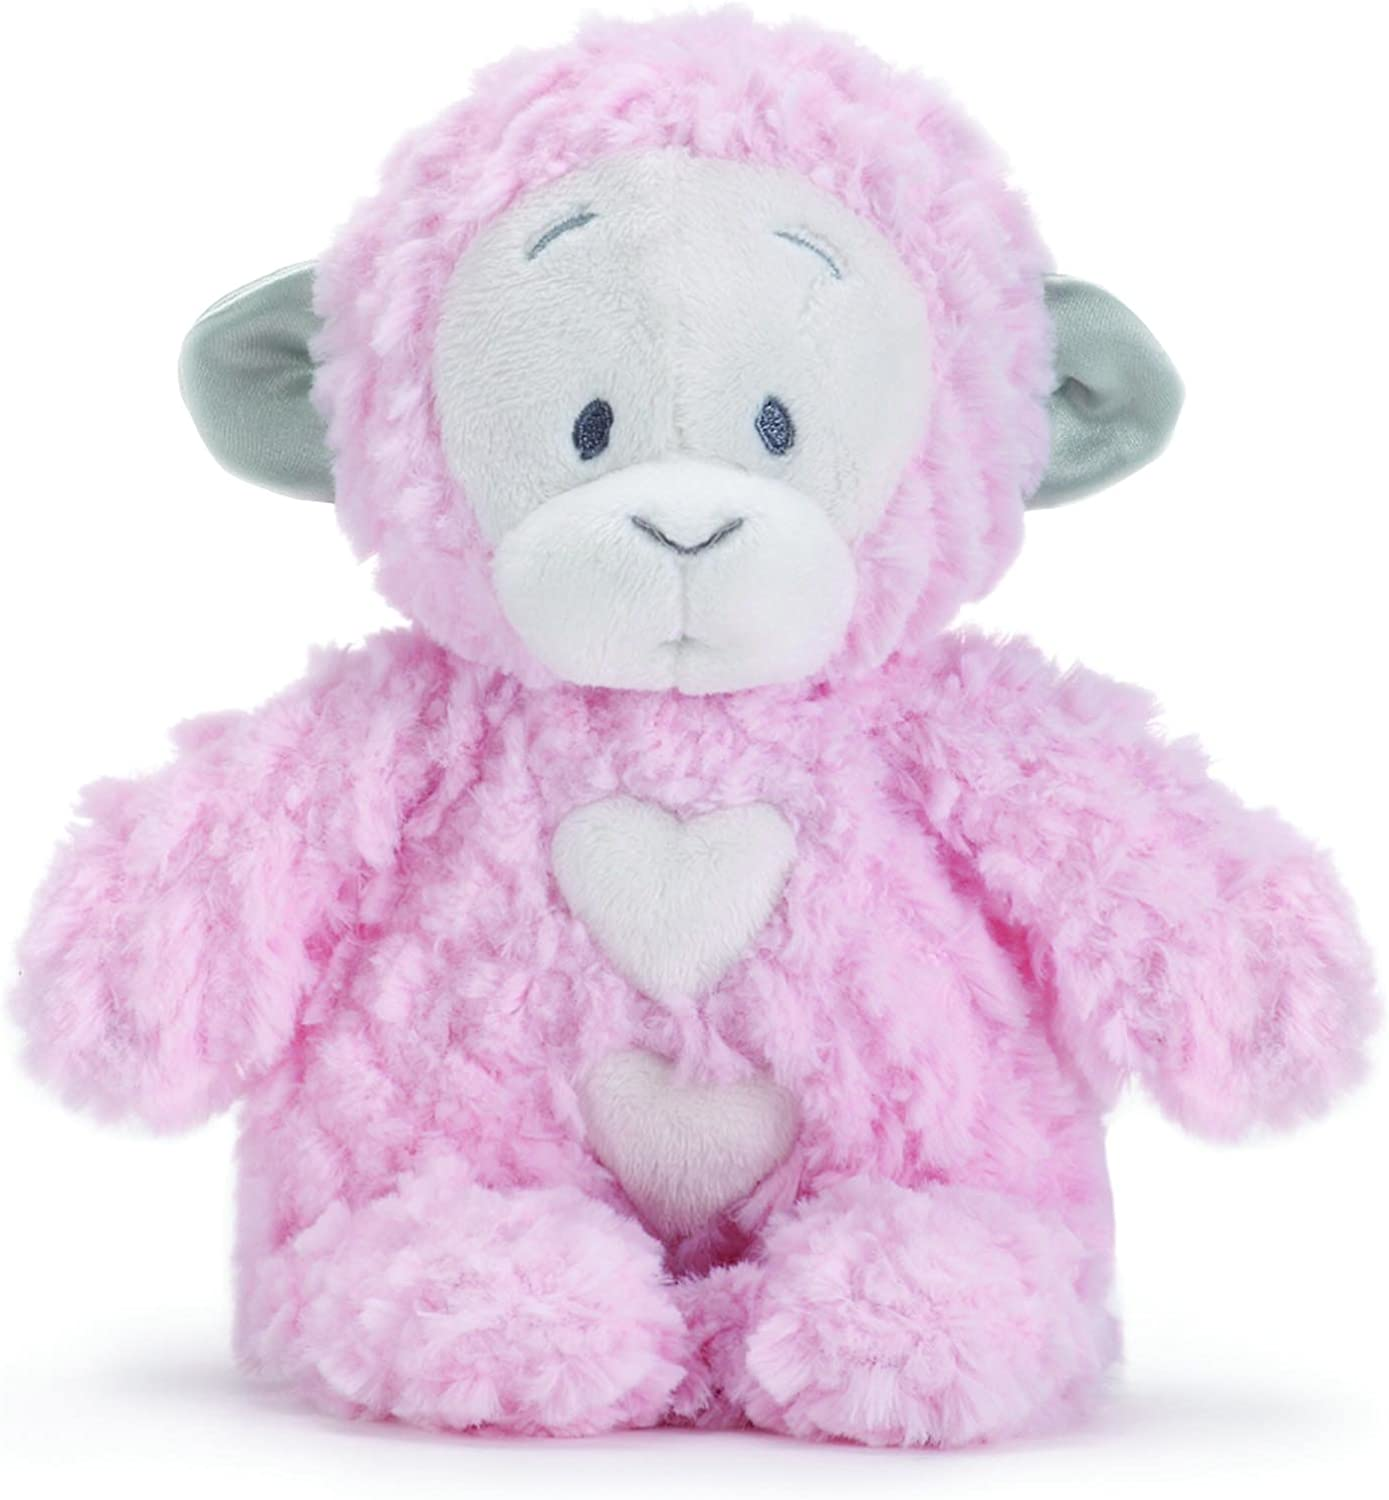 Nat and Jules Light Up Musical Toy, Milene Monkey